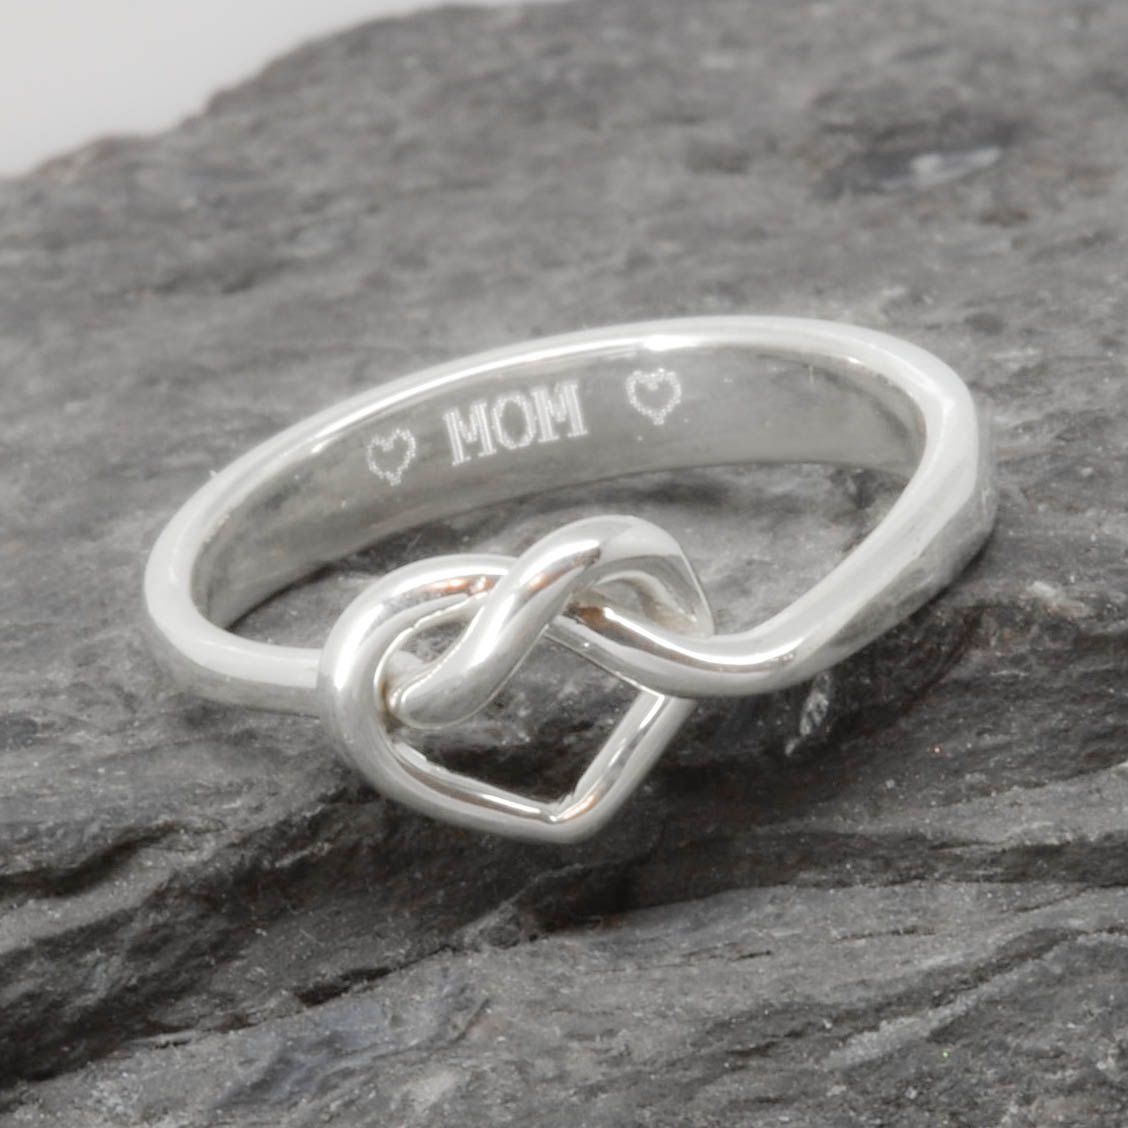 Knot Mother Daughter Personalized Maid of honor Gift Bridesmaid Gift Promise Friendship Infinity Ring Best friend Sisters Ring